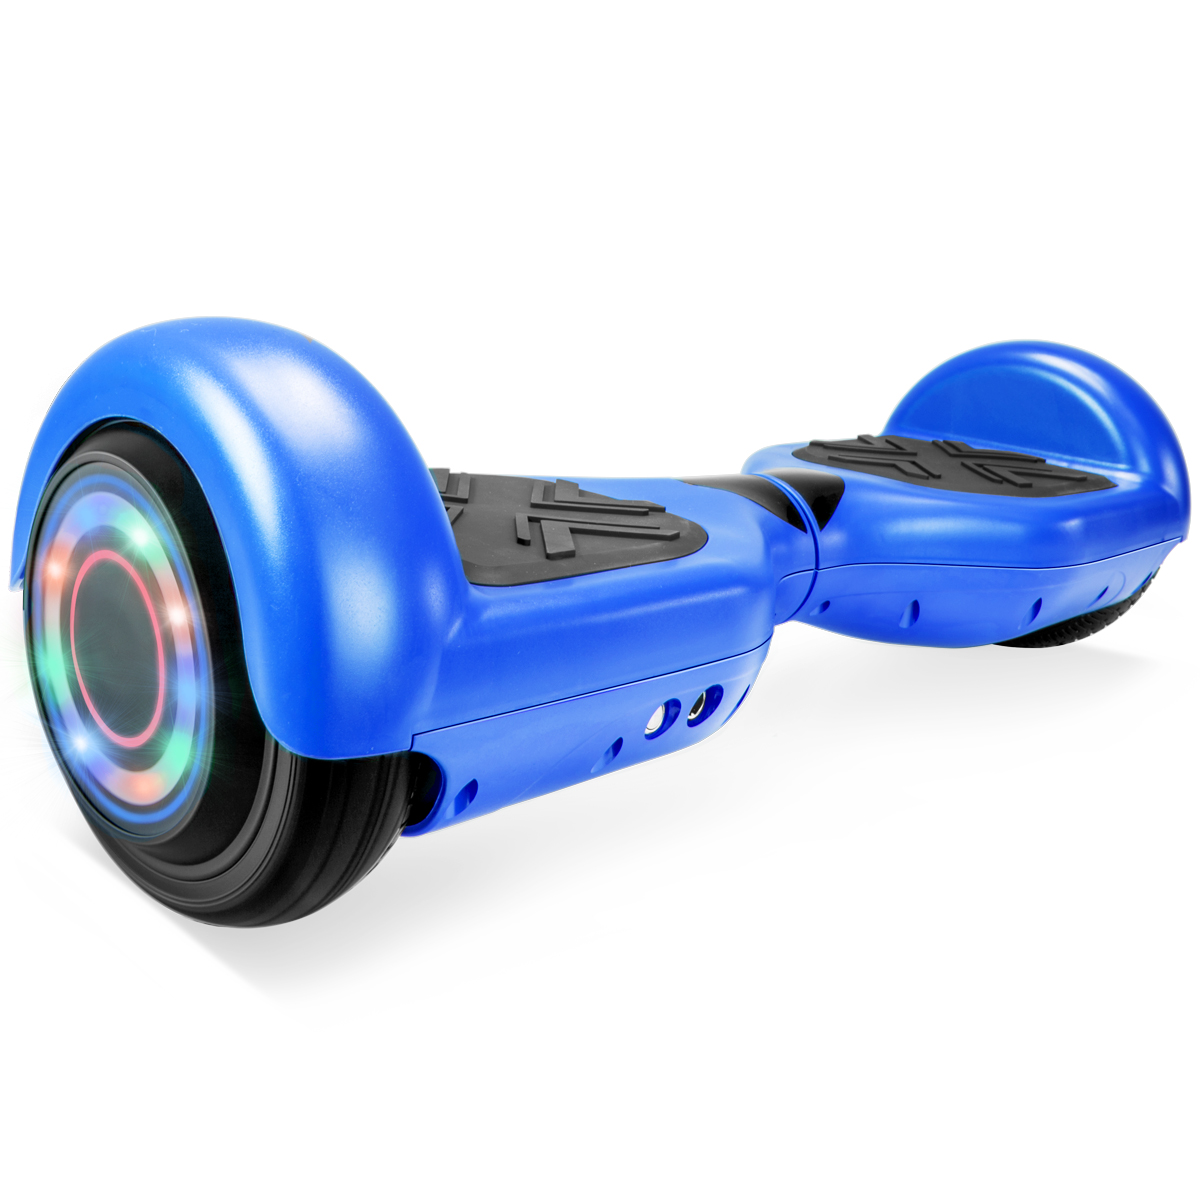 "UL 2272 Certificated 6.5"" Self Balancing Hoverboard Scooter w/ Bluetooth Speaker - Matte Blue"